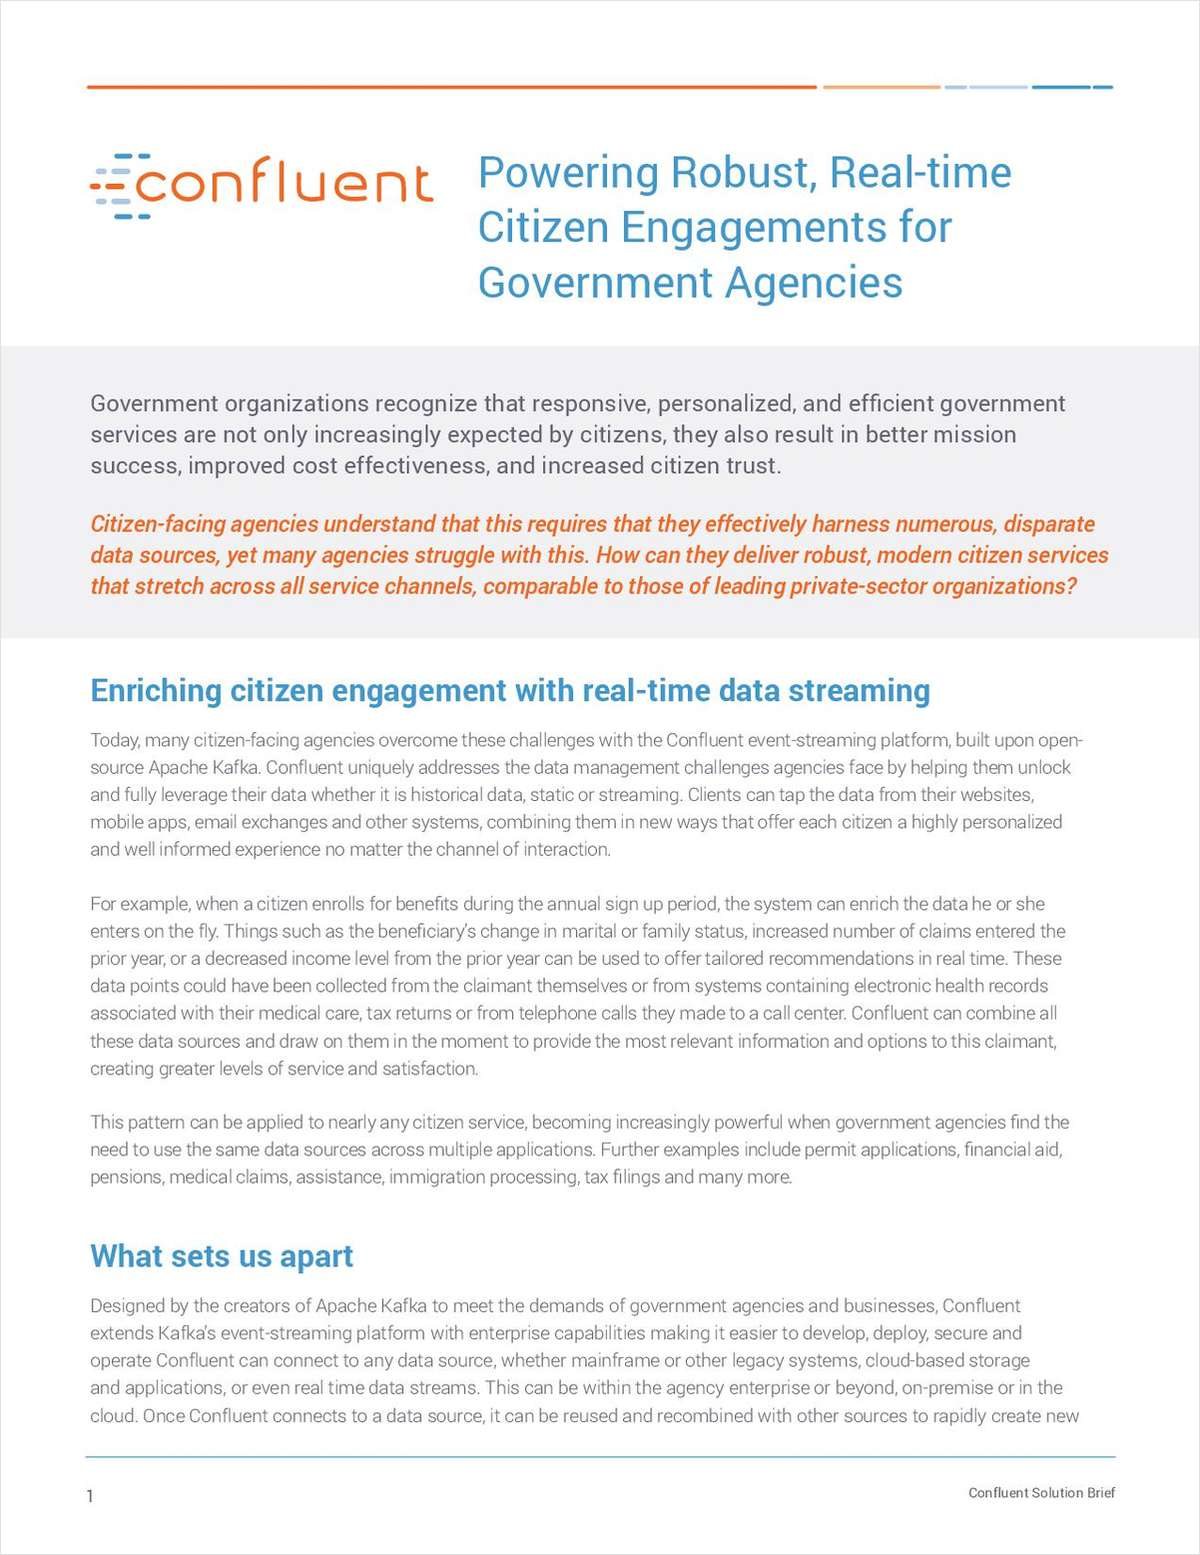 Powering Robust, Real-time Citizen Engagement for Government Agencies